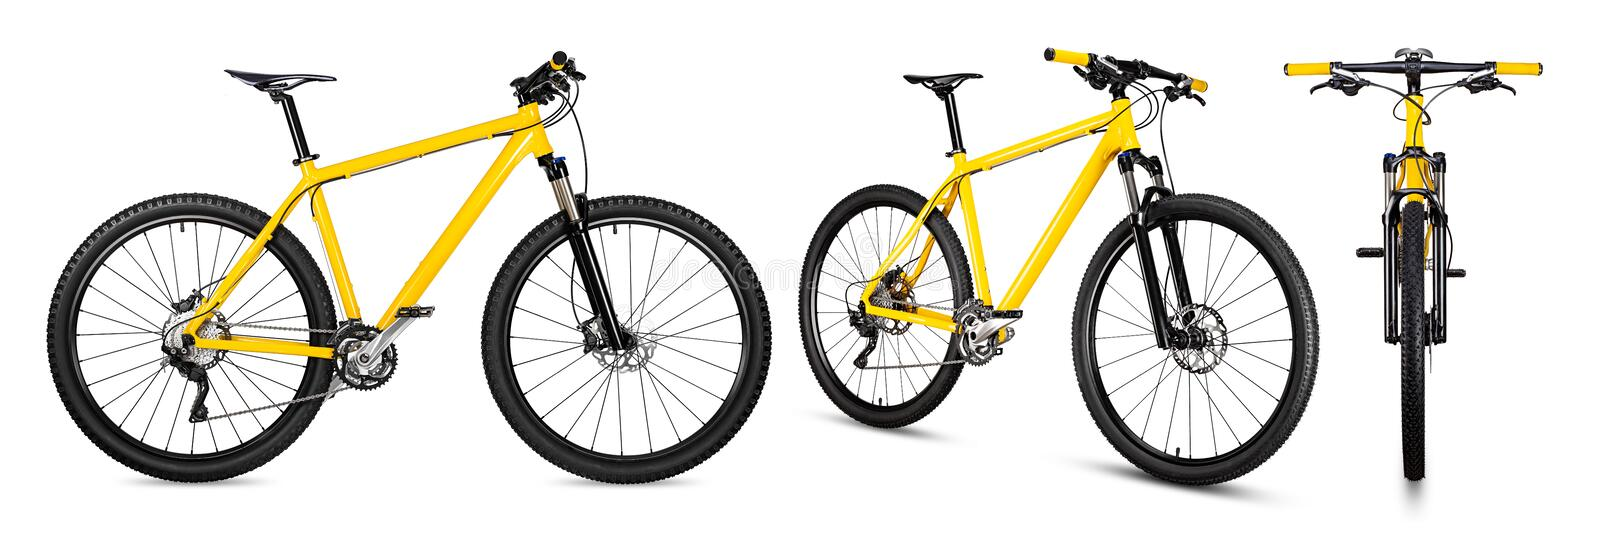 Set collection of yellow black 29er mountainbike with thick offroad tyres. bicycle mtb cross country aluminum, cycling sport royalty free stock image